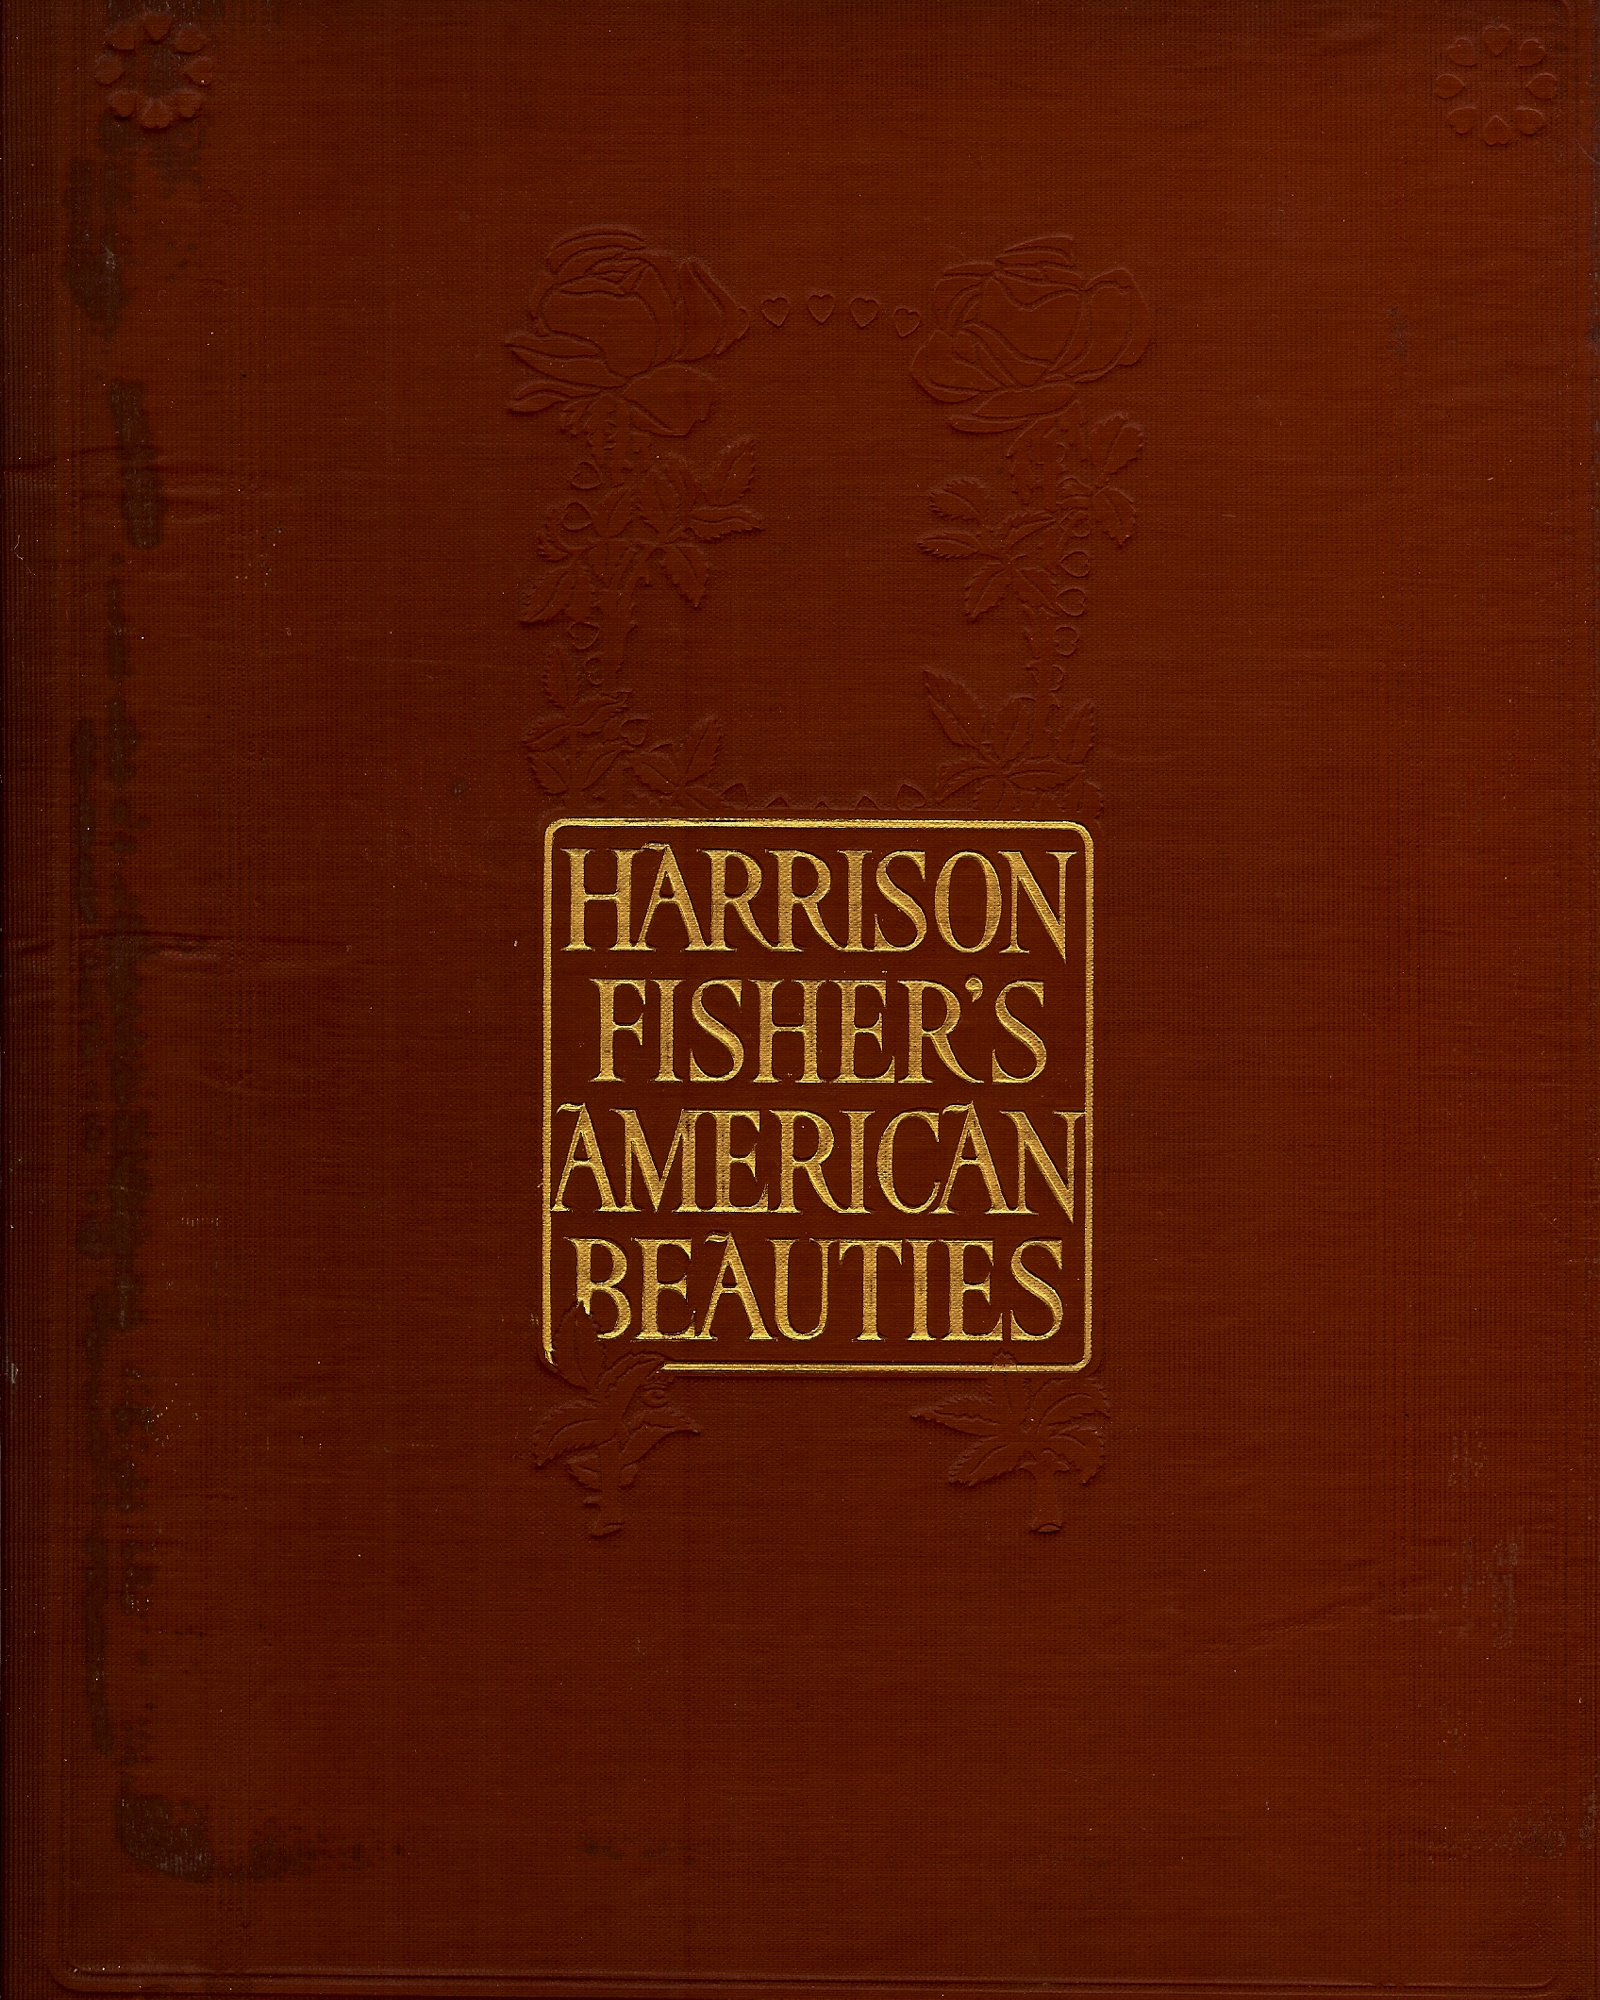 Image for HARRISON FISHER'S AMERICAN BEAUTIES